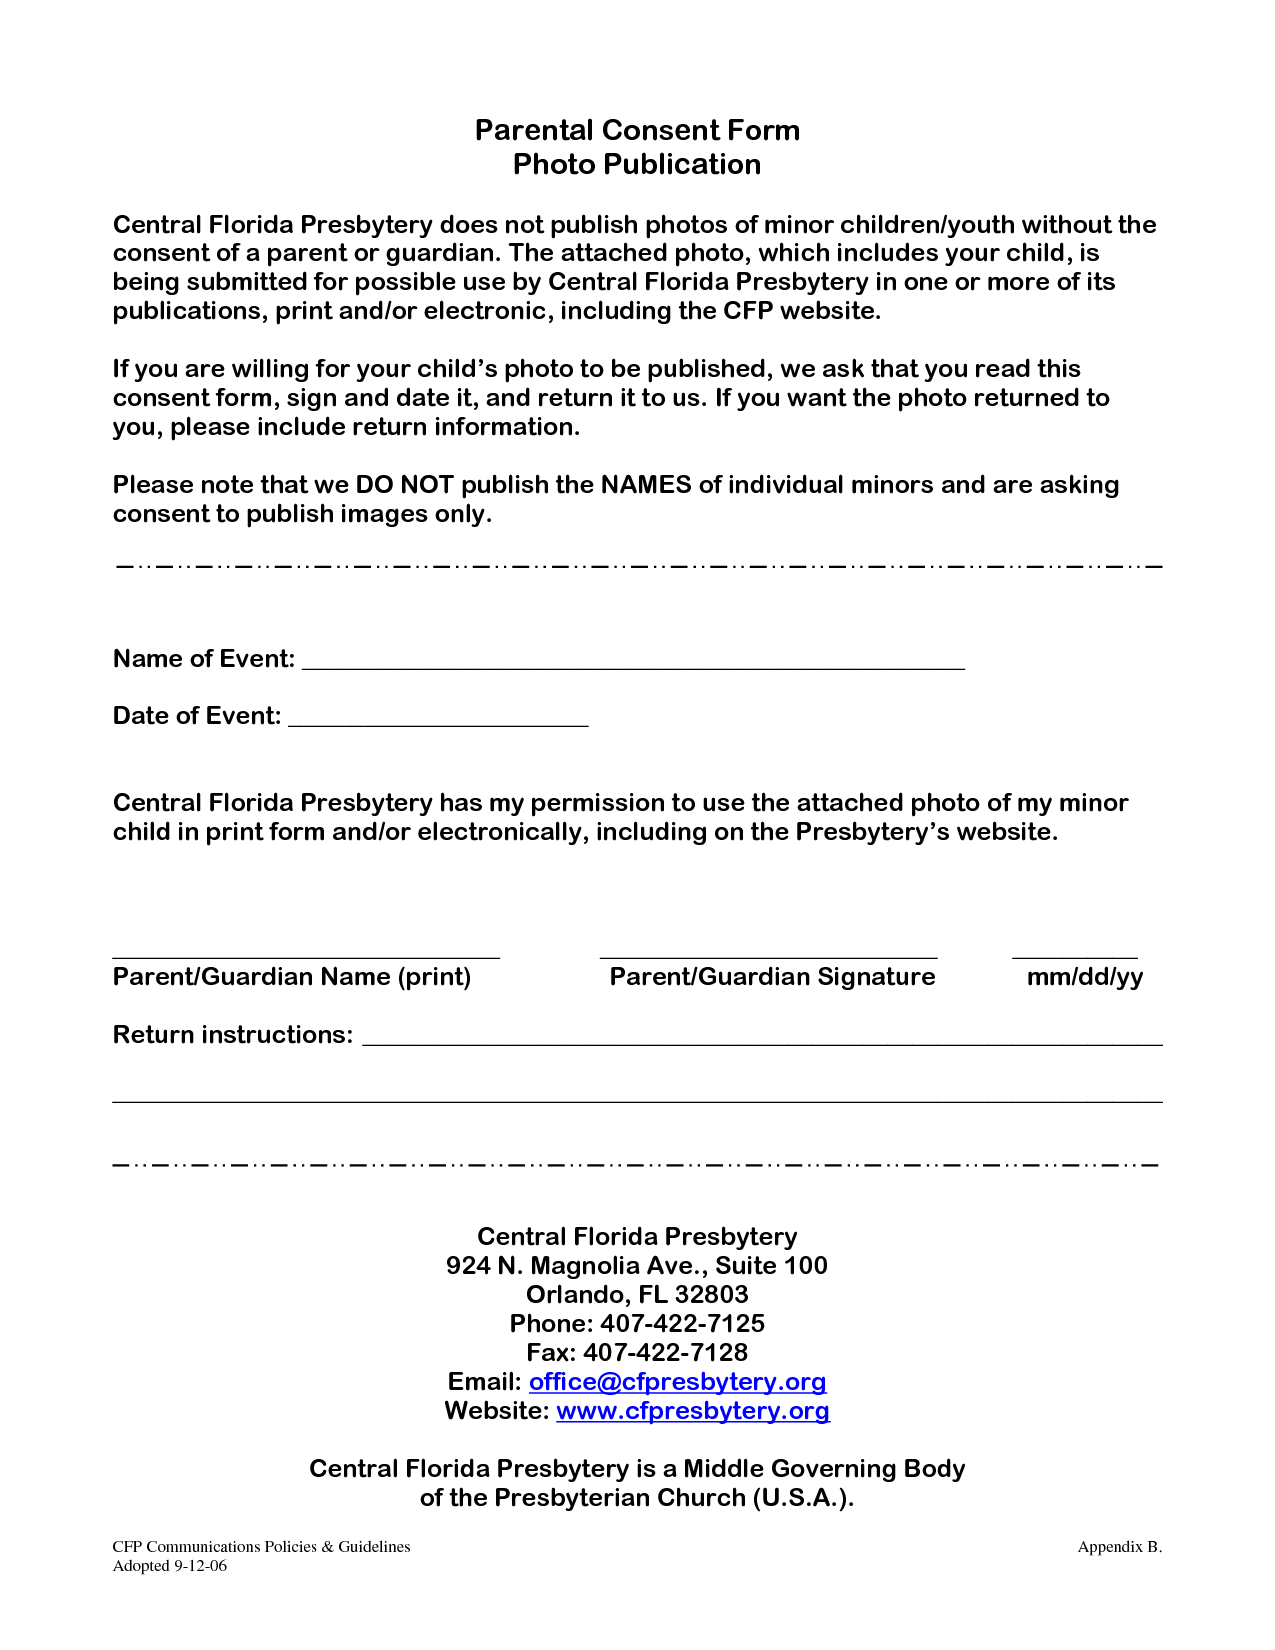 Essay clipart consent form. Photograph images photography